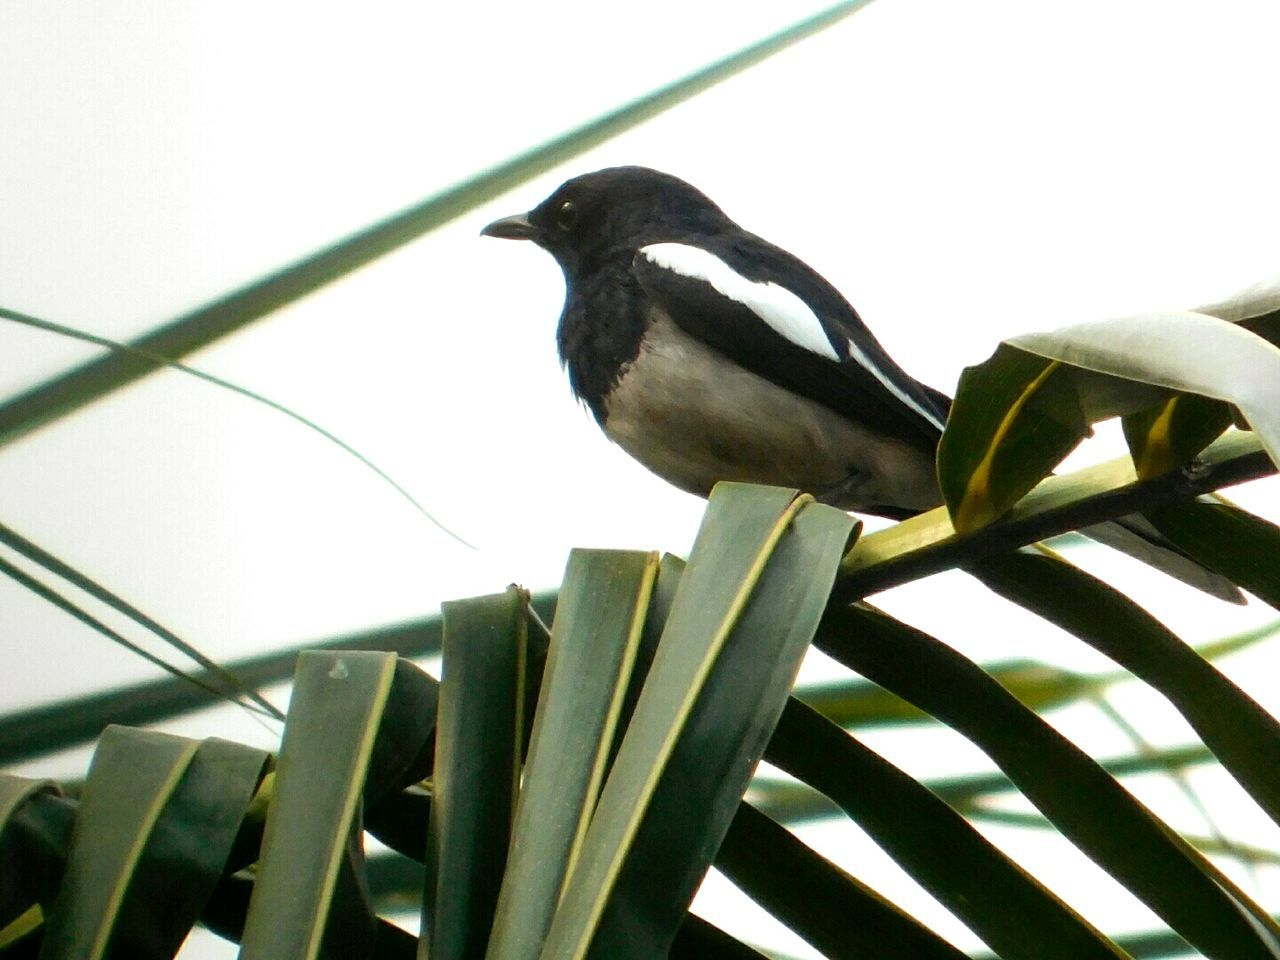 animal themes, animals in the wild, bird, one animal, perching, no people, animal wildlife, close-up, clear sky, day, outdoors, nature